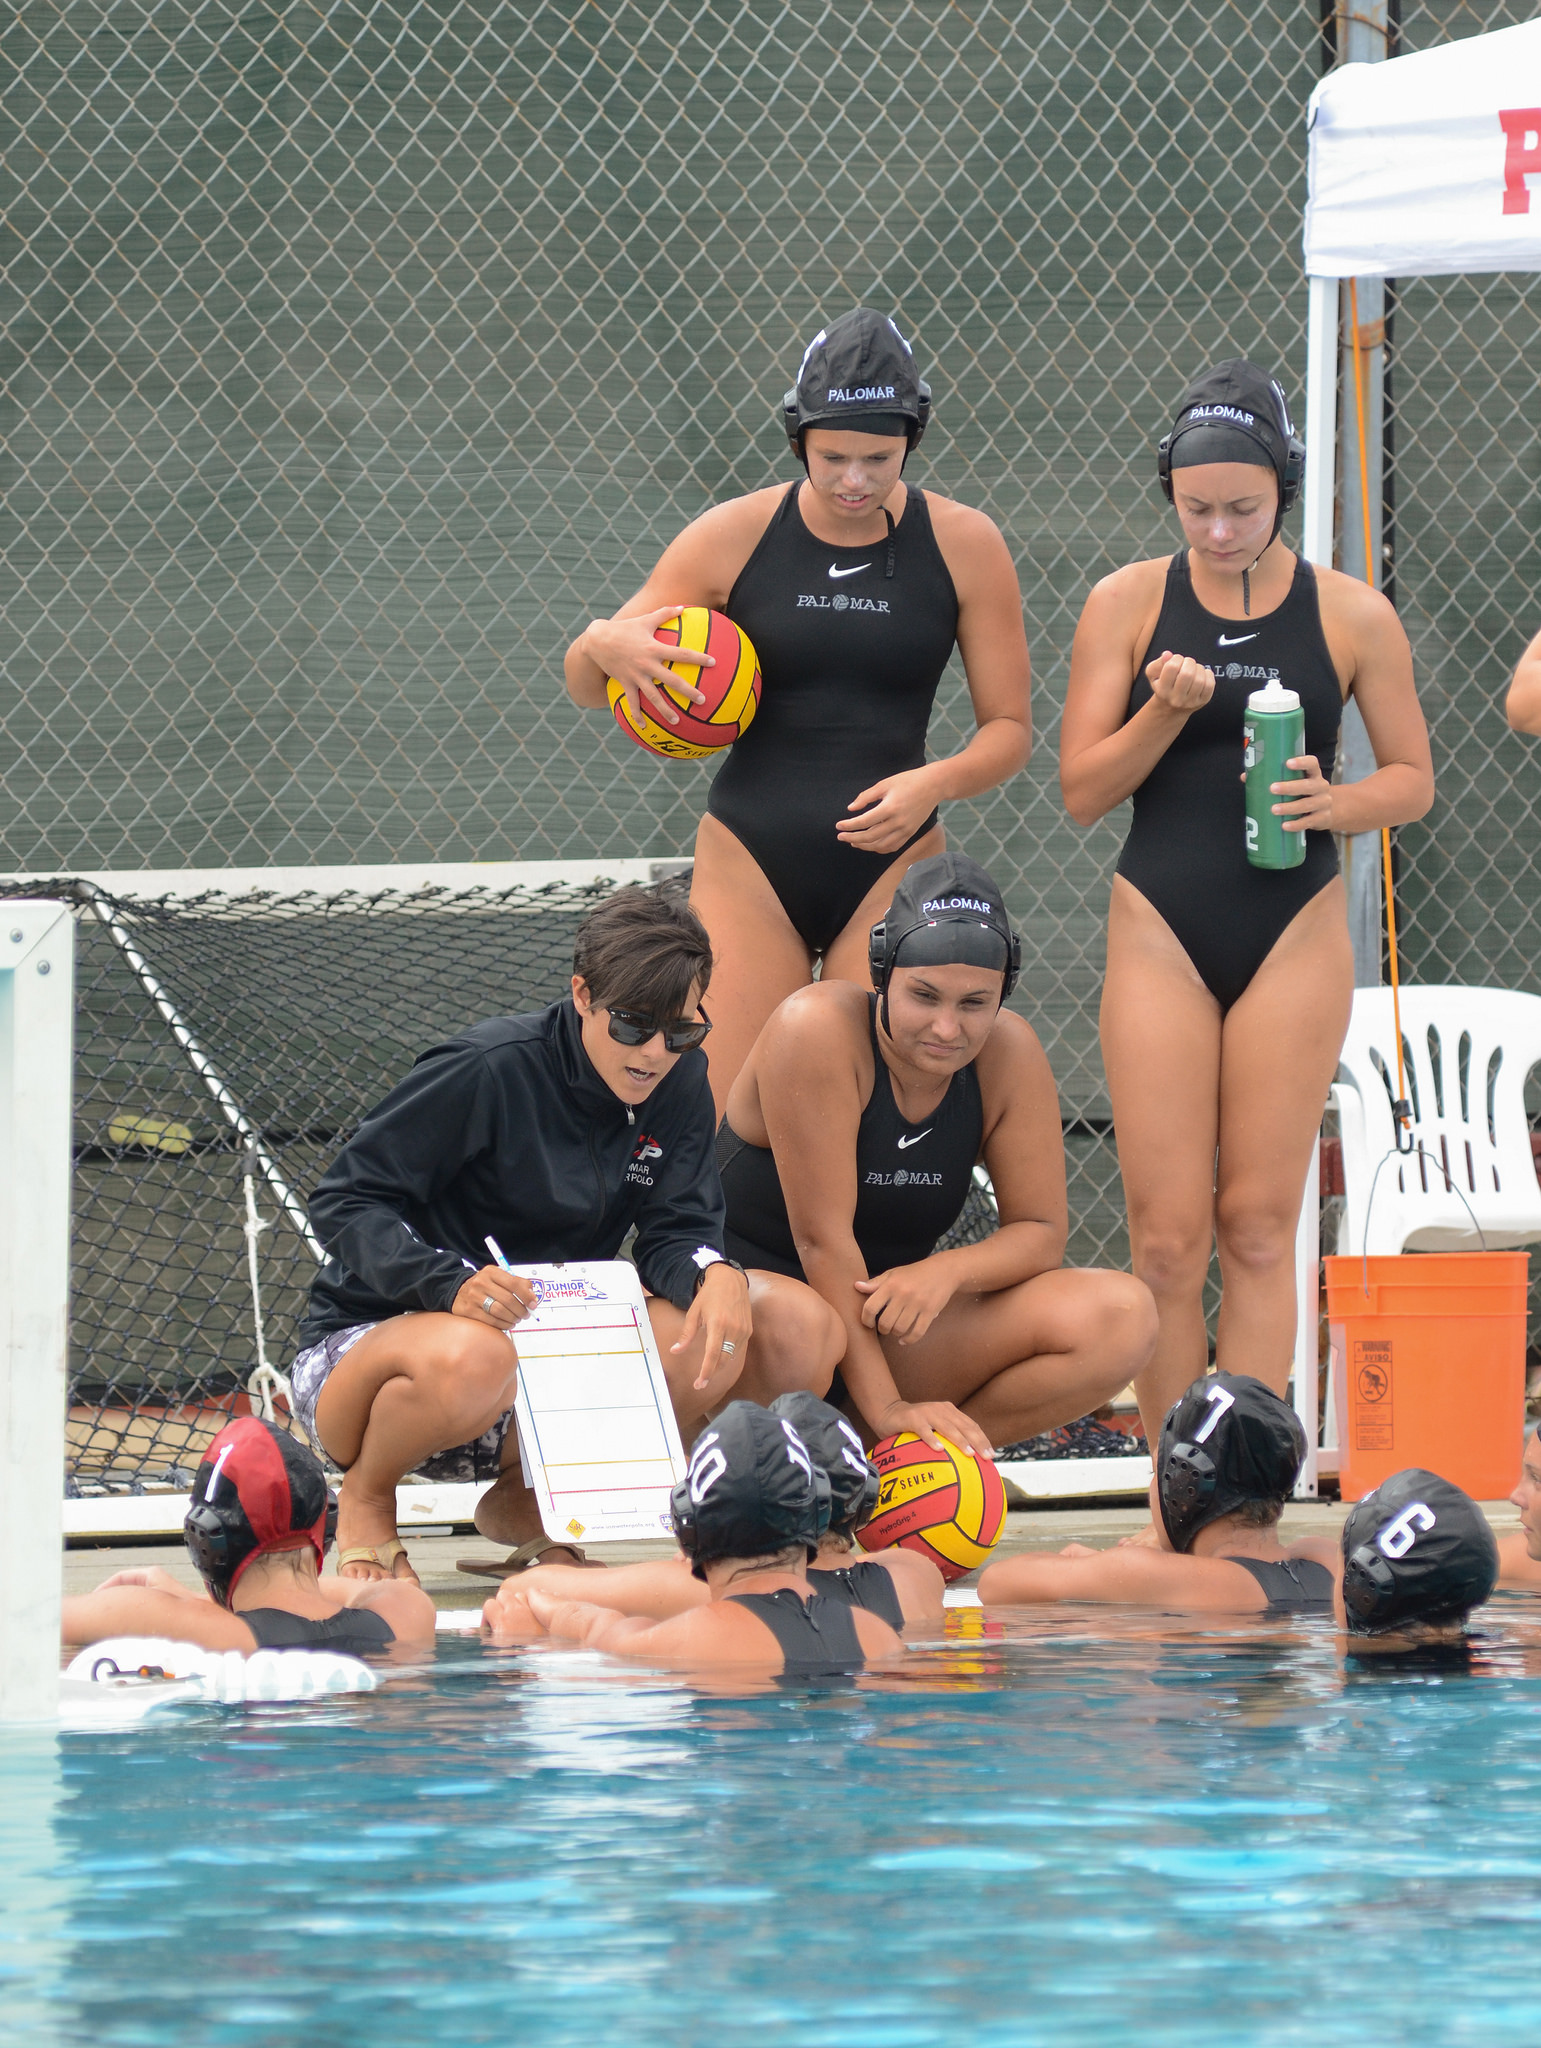 Palomar Head Coach Jackie Puccino dicusses strategic moves with her players during a time-out on Sept. 26. Palomar played Southwestern College at Wallace Memorial Pool and defeated them 19-1. Tracy Grassel/The Telescope